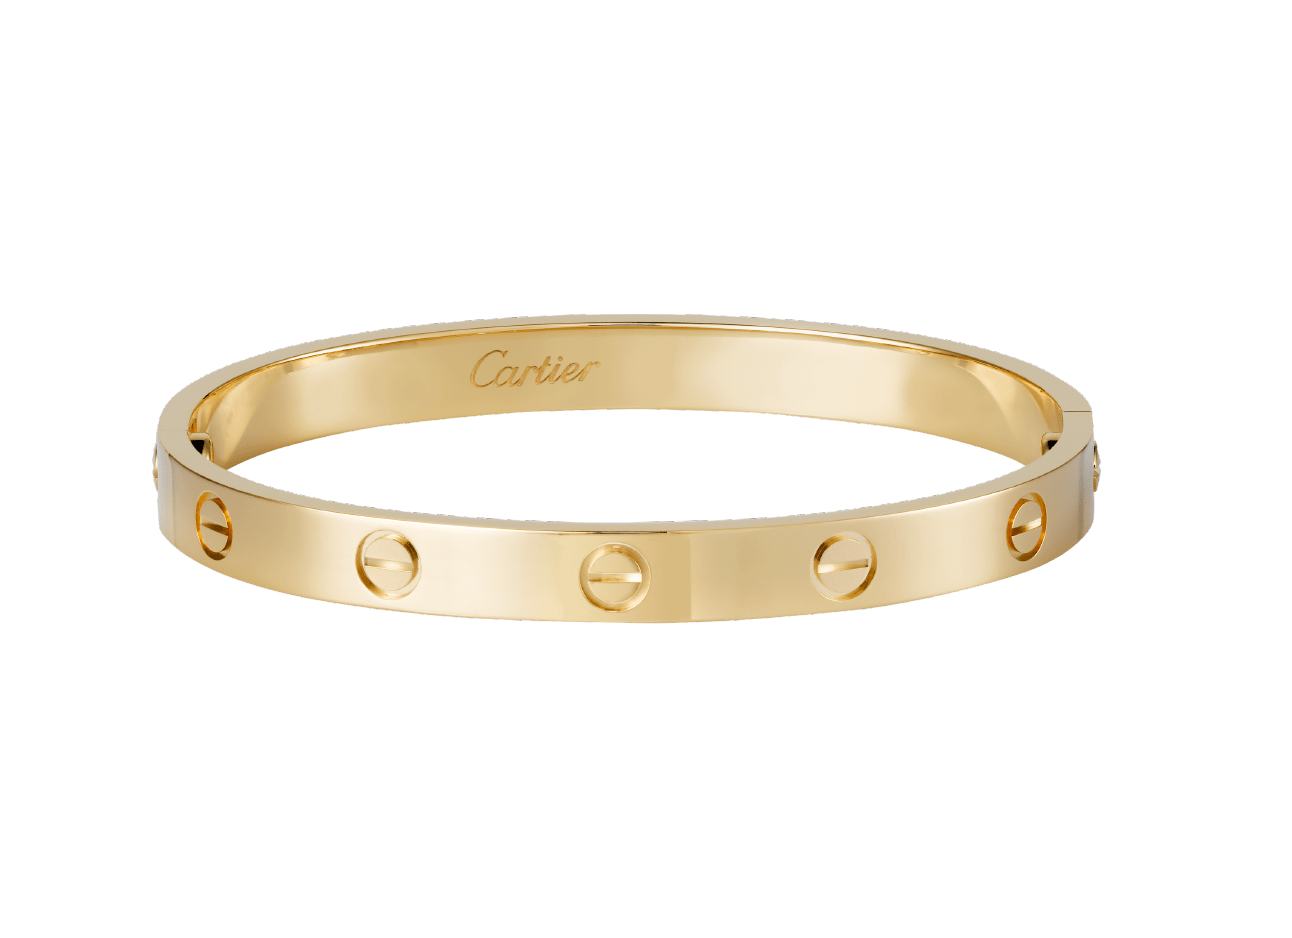 Cartier Love Bracelet Facts 10 Things You Didn39t Know About The Cartier Bangle